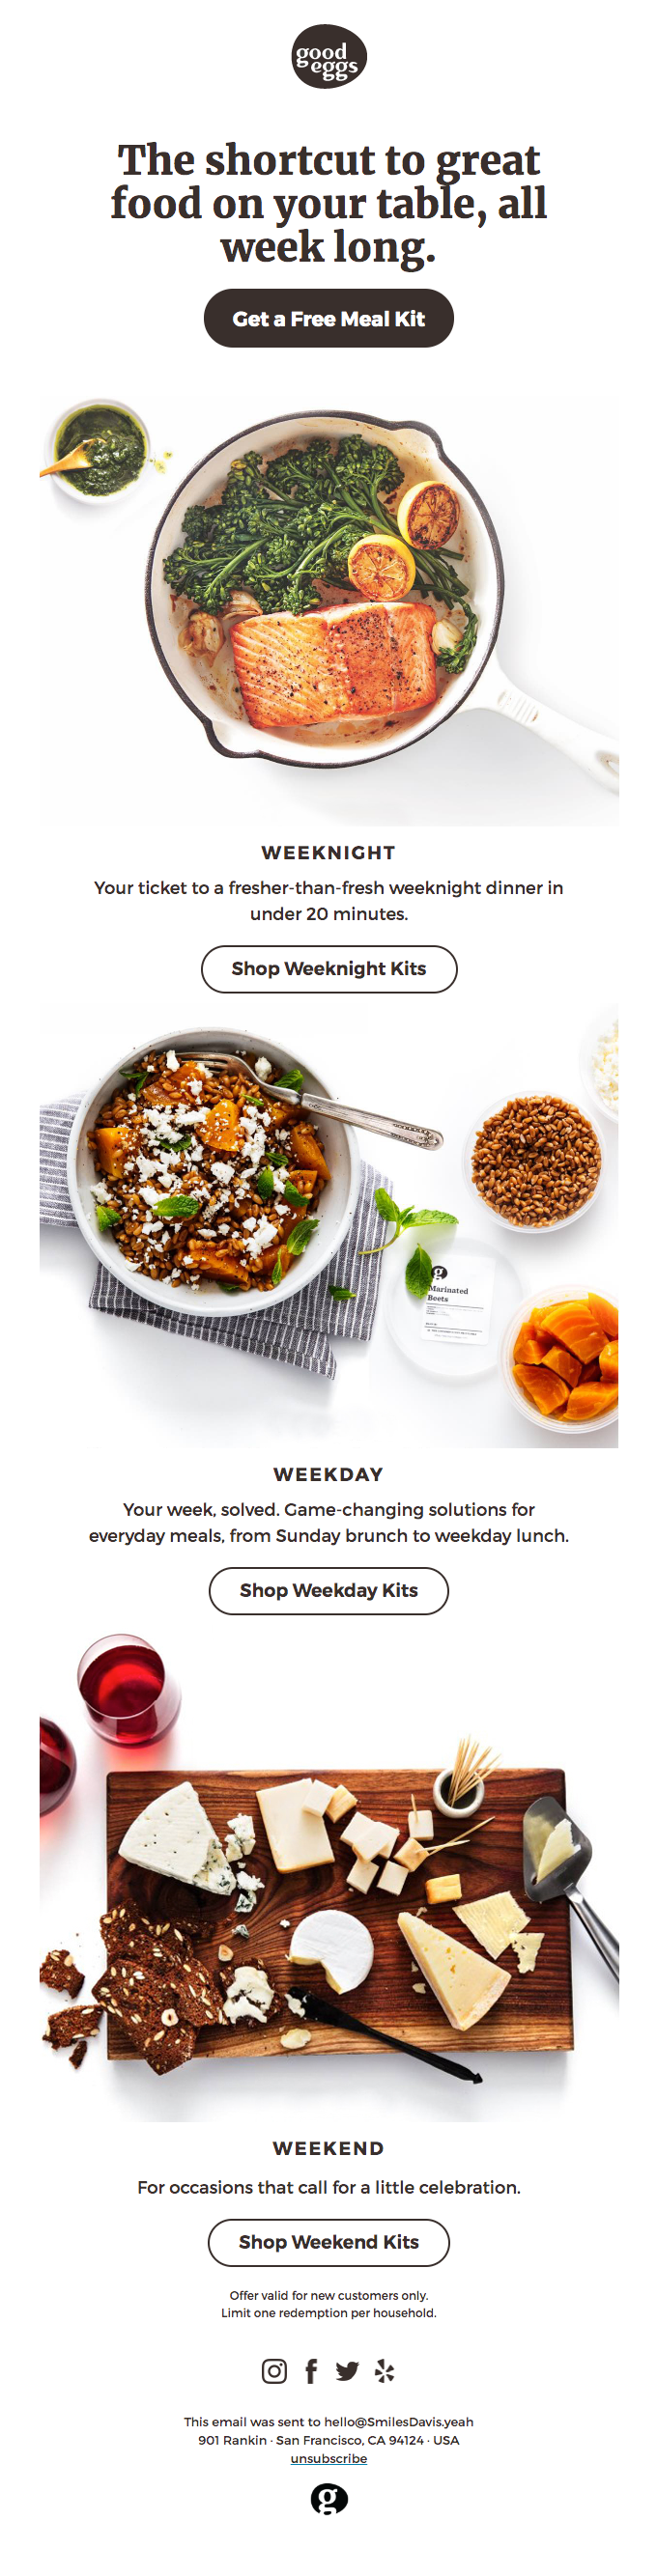 Solve your week with a free meal kit!